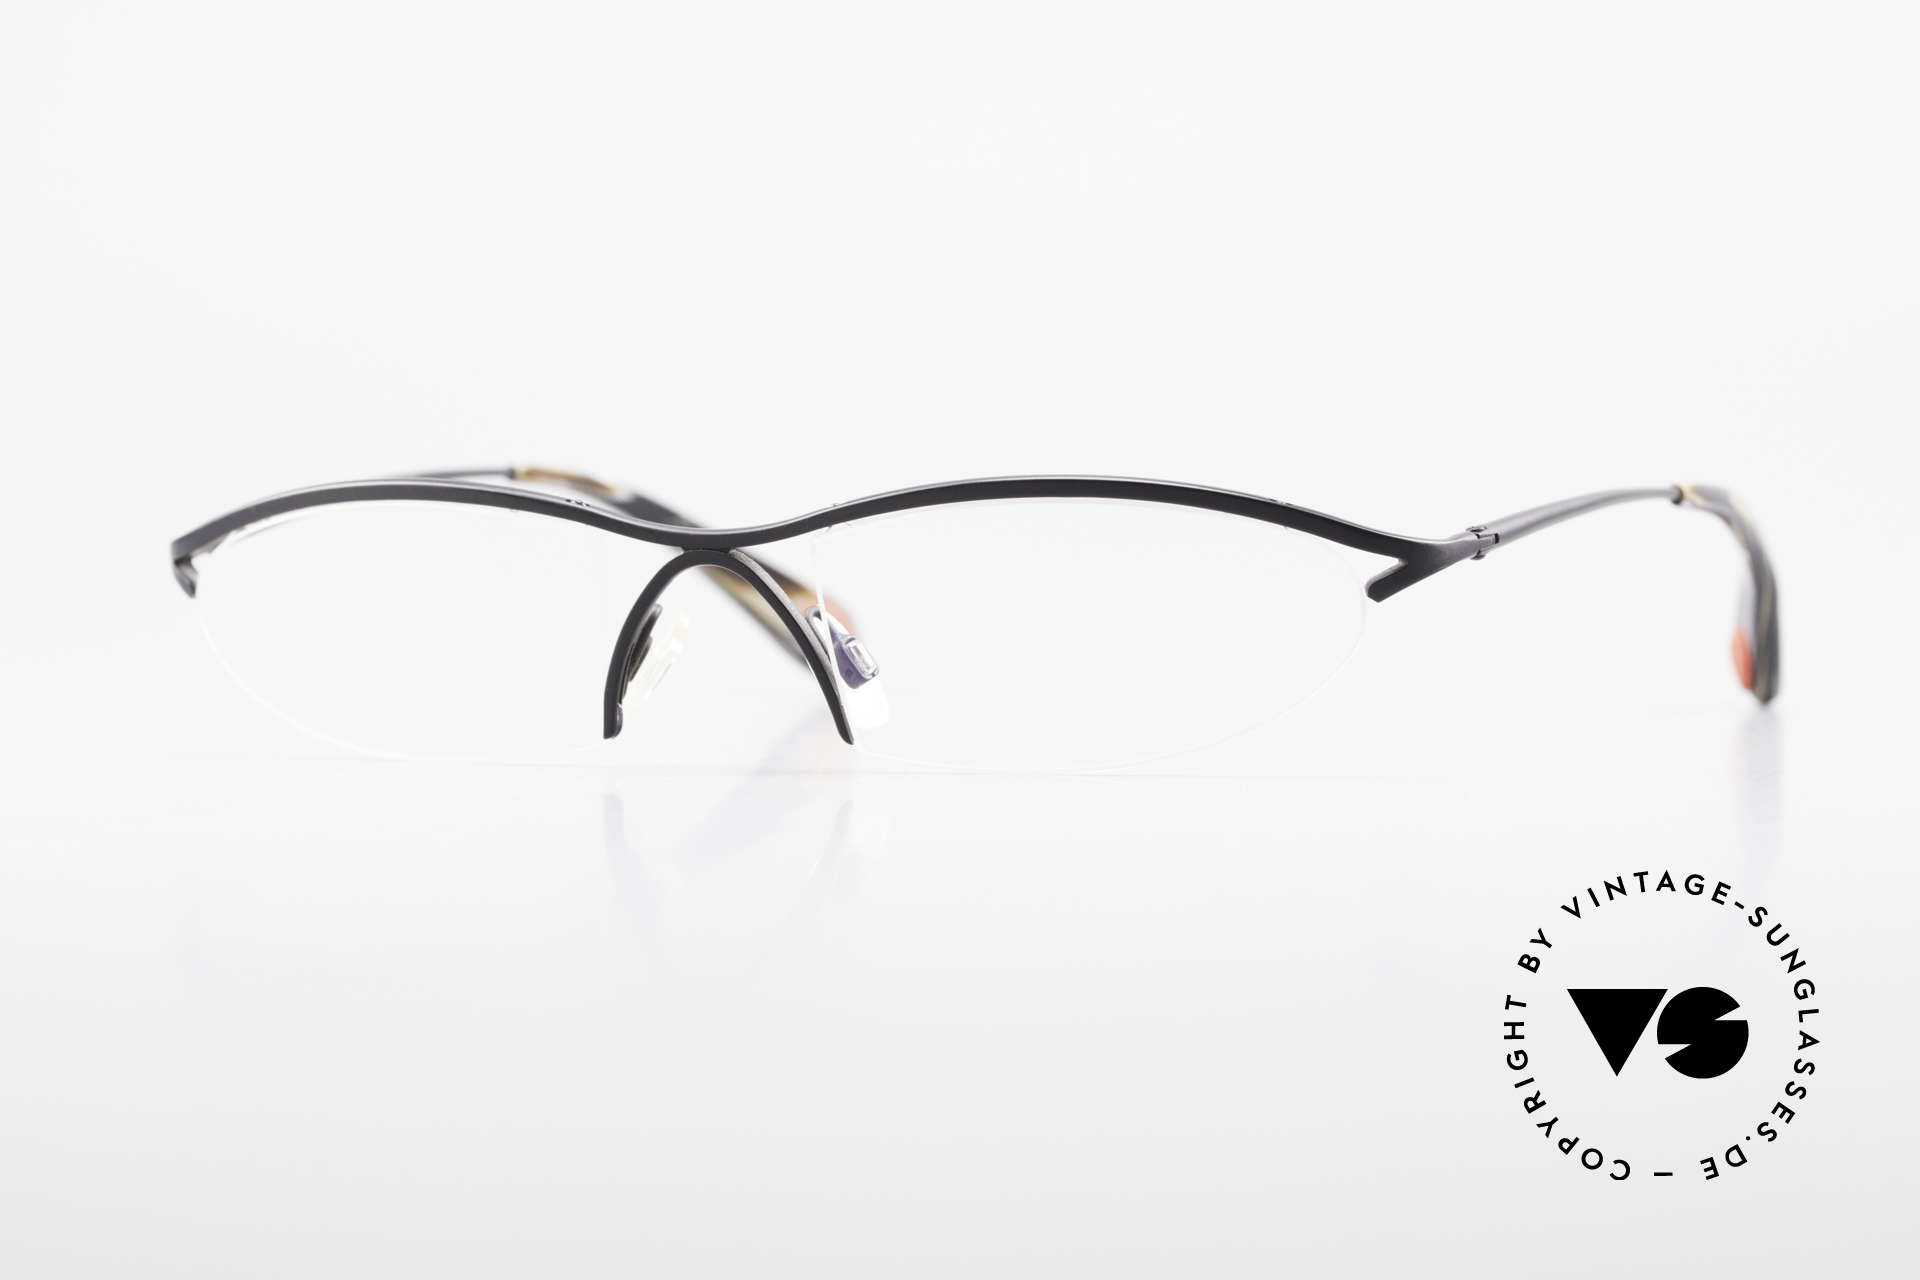 Bugatti 342 Odotype Nylor Frame Semi Rimless, original BUGATTI high-tech eyeglass-frame, Made for Men